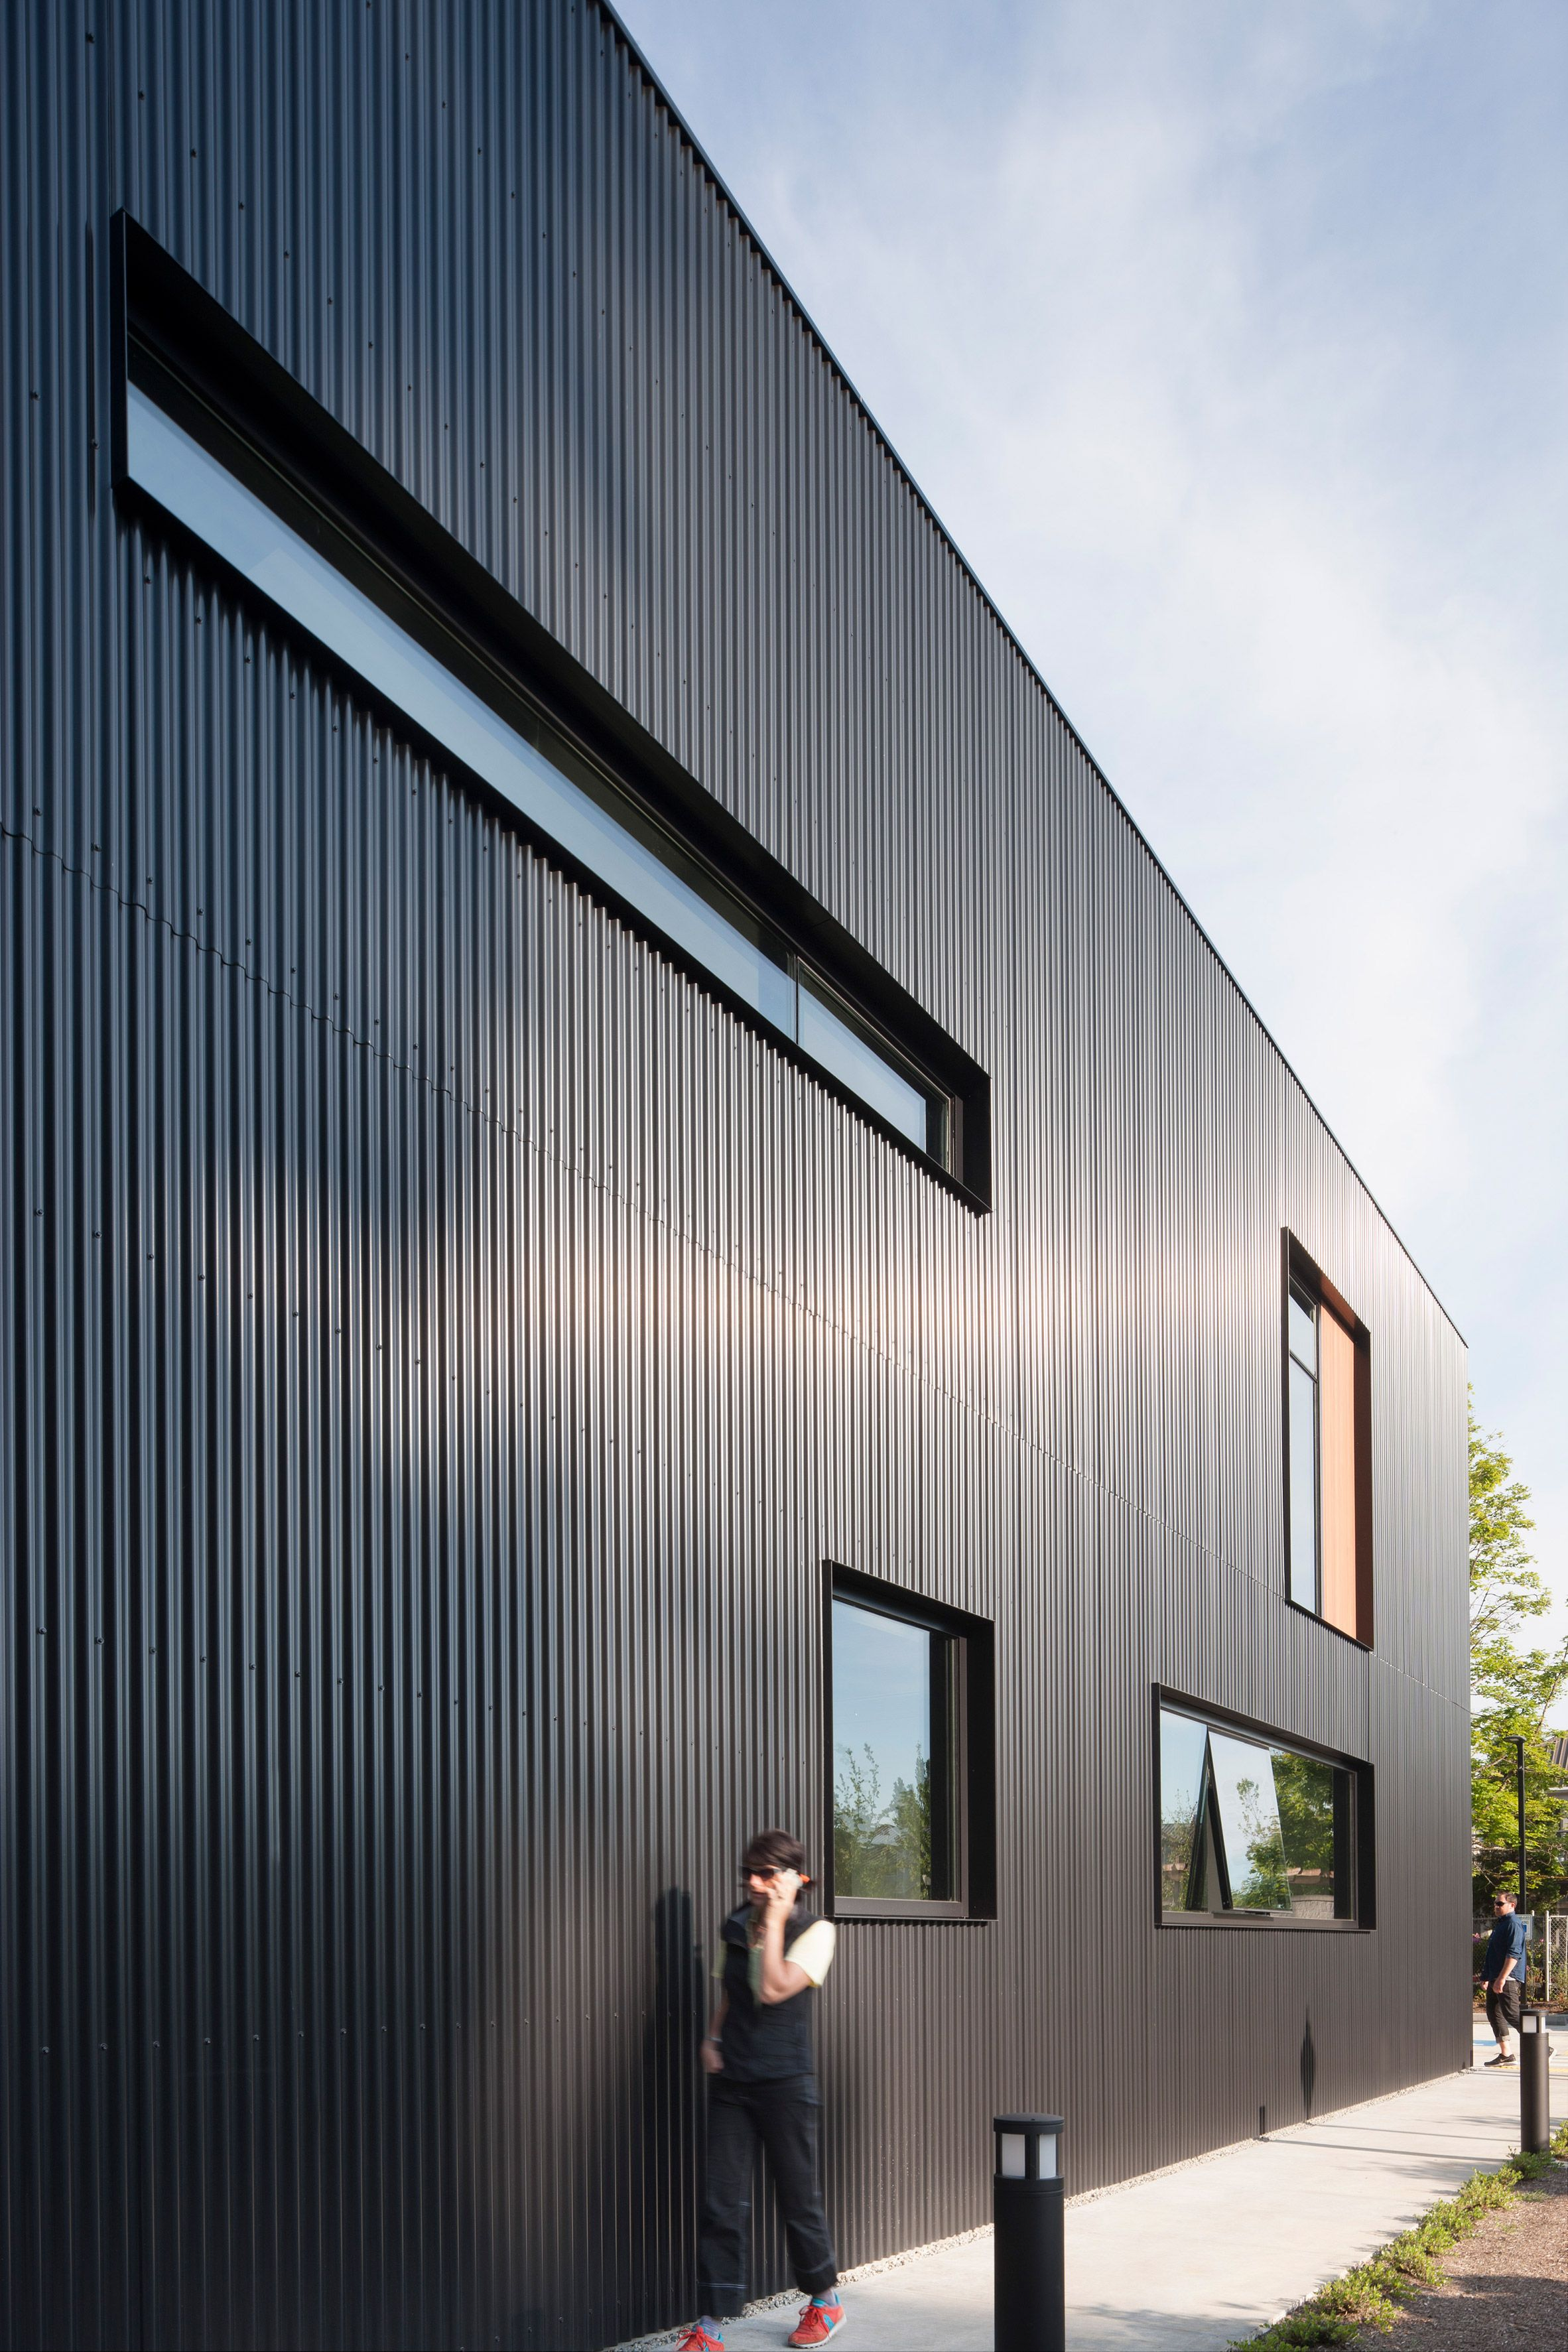 How To Install A Corrugated Metal Accent Wall: Mercer Island Fire Station By Miller Hull Corrugated Metal Clads Exterior Walls, With Red Cedar